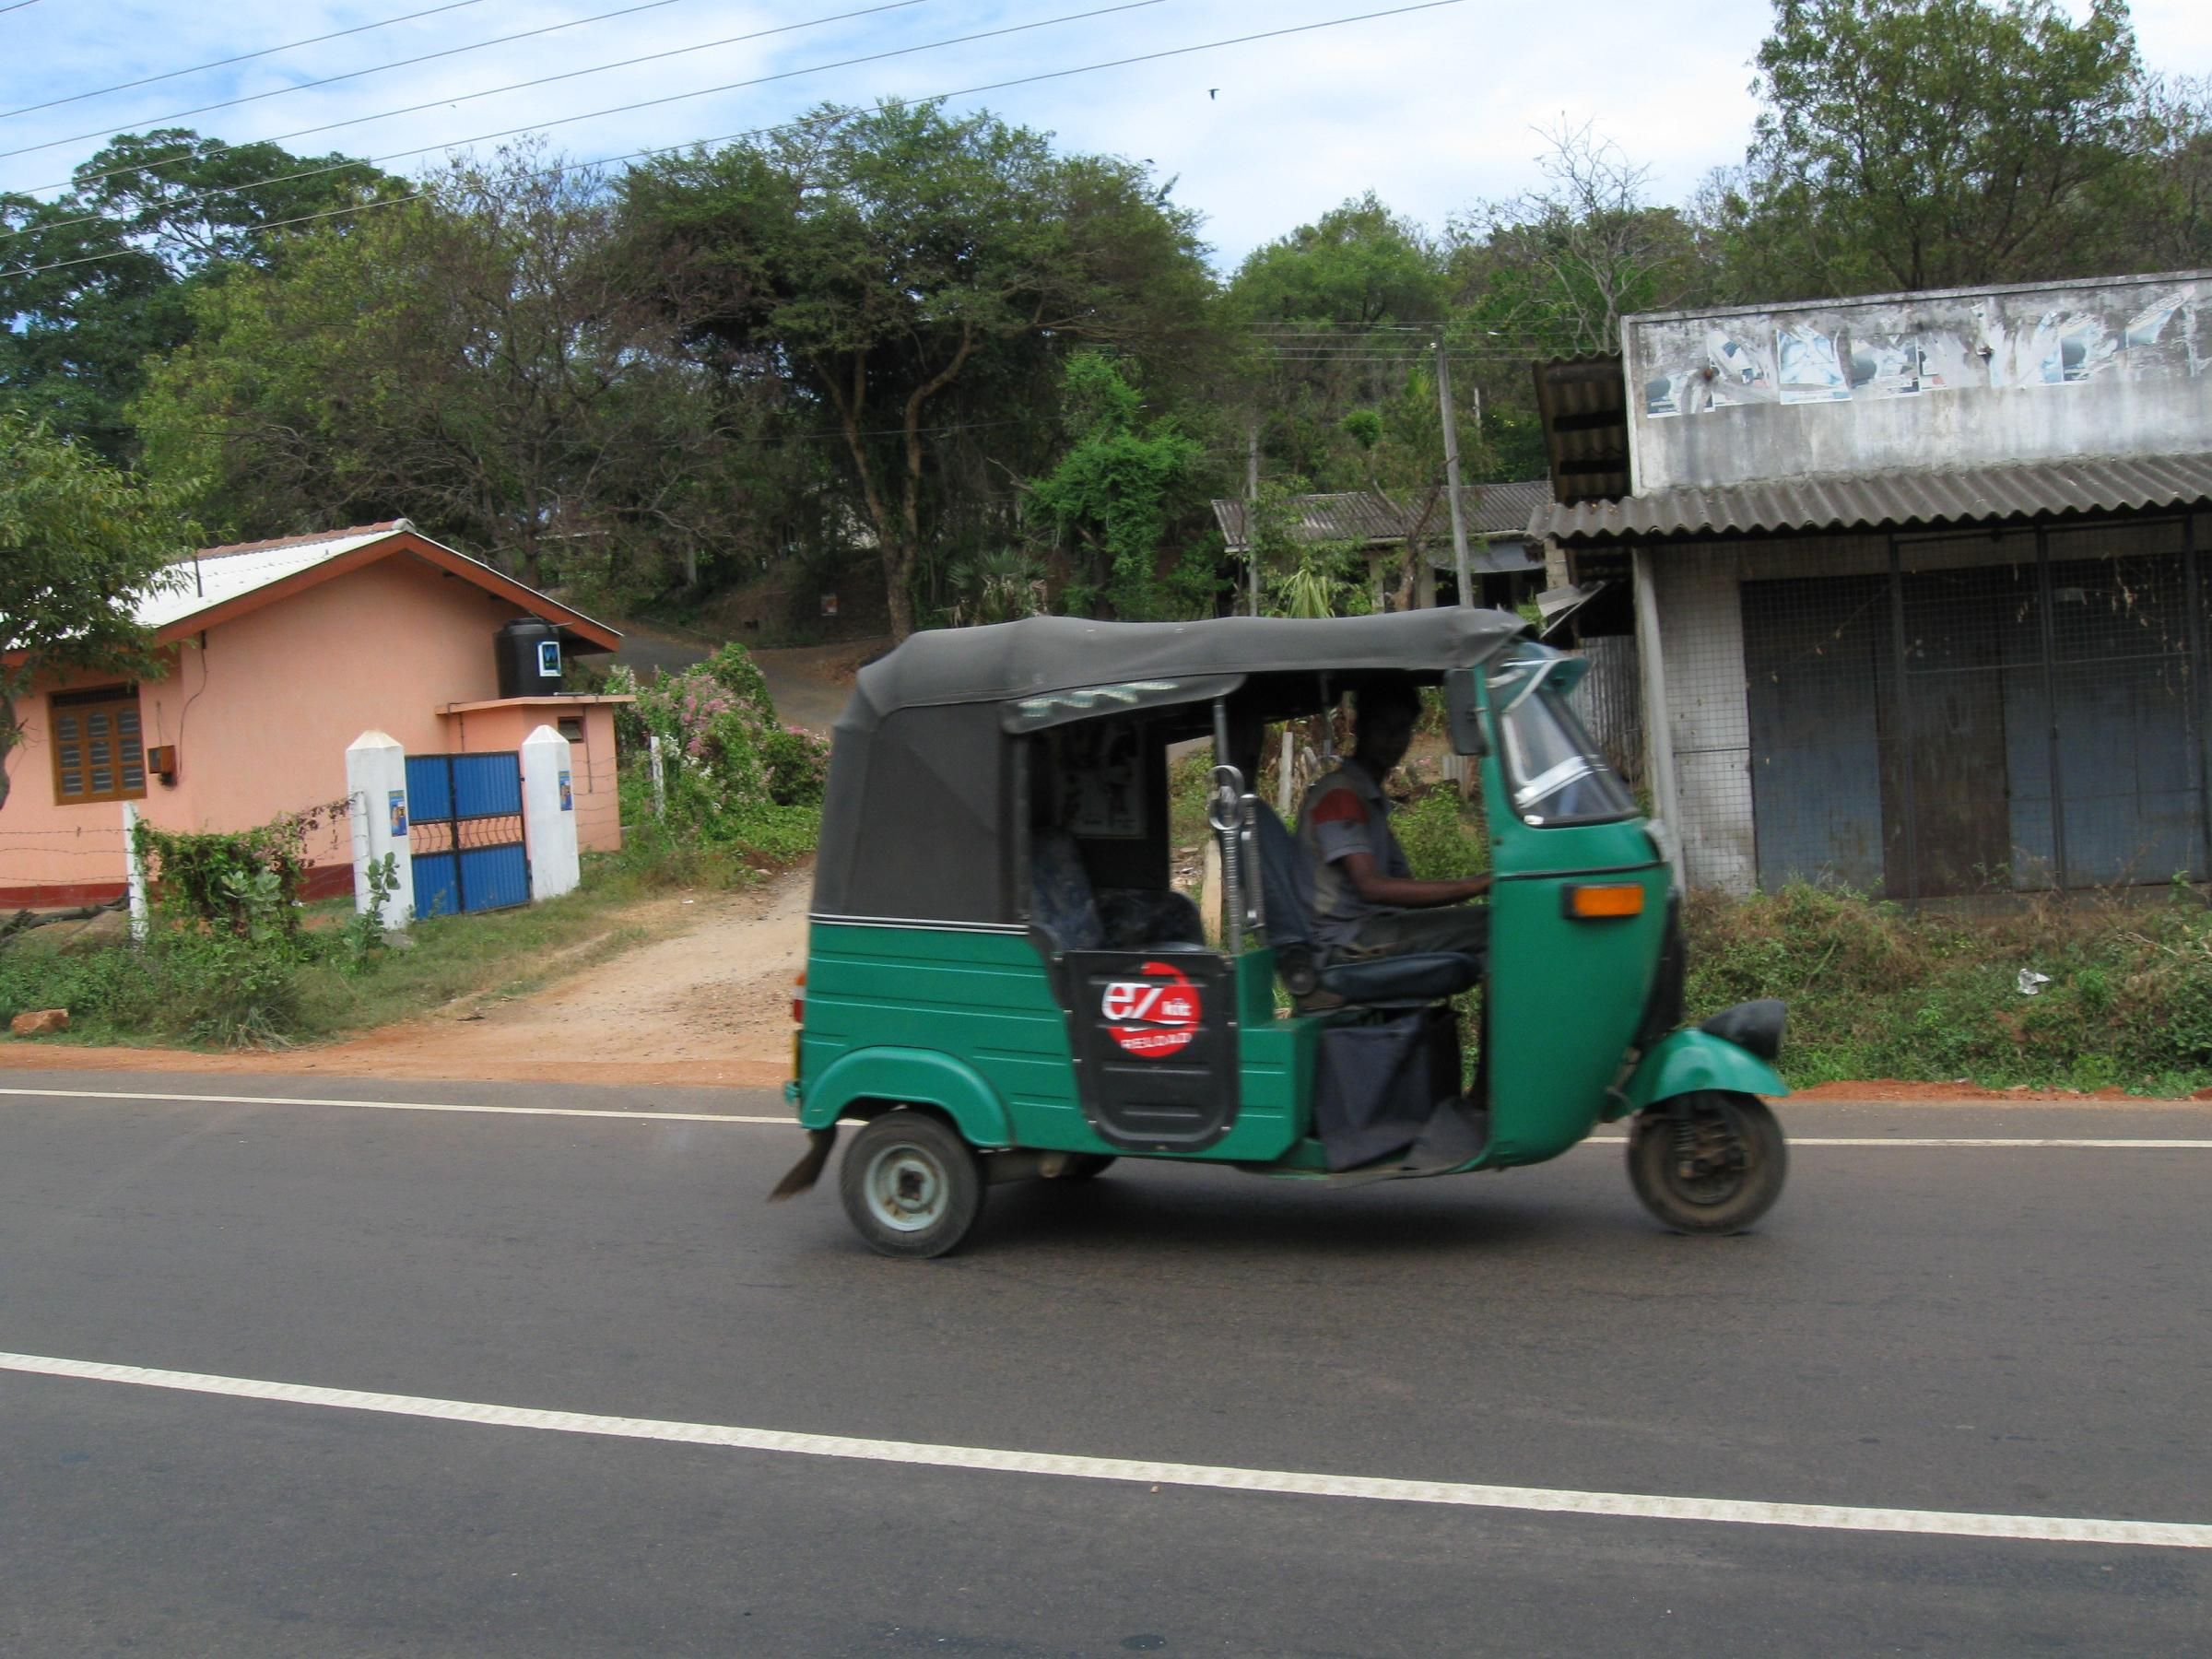 A Tuk-Tuk taxi in Sri Lanka next time i will walk